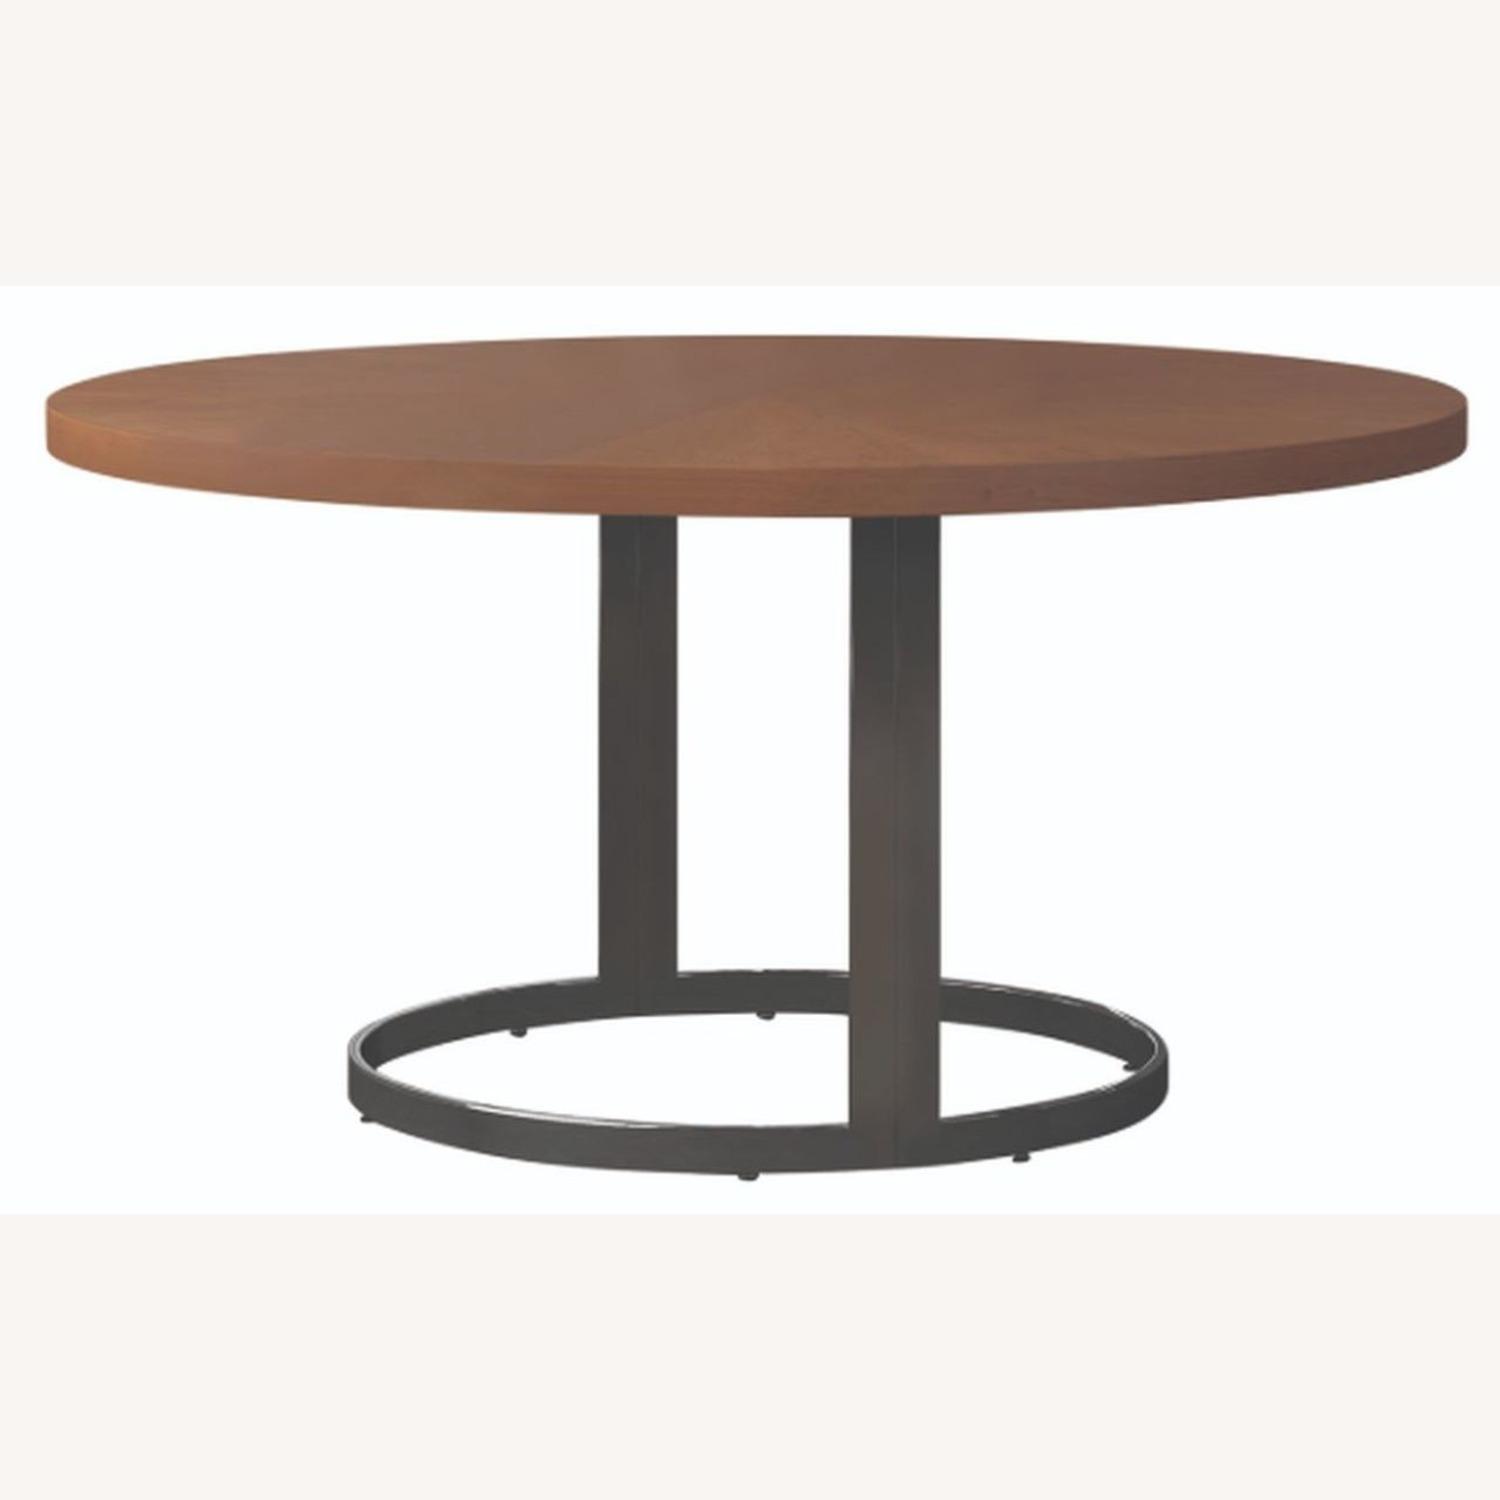 Modern Dining Table In Natural Cherry Finish - image-1